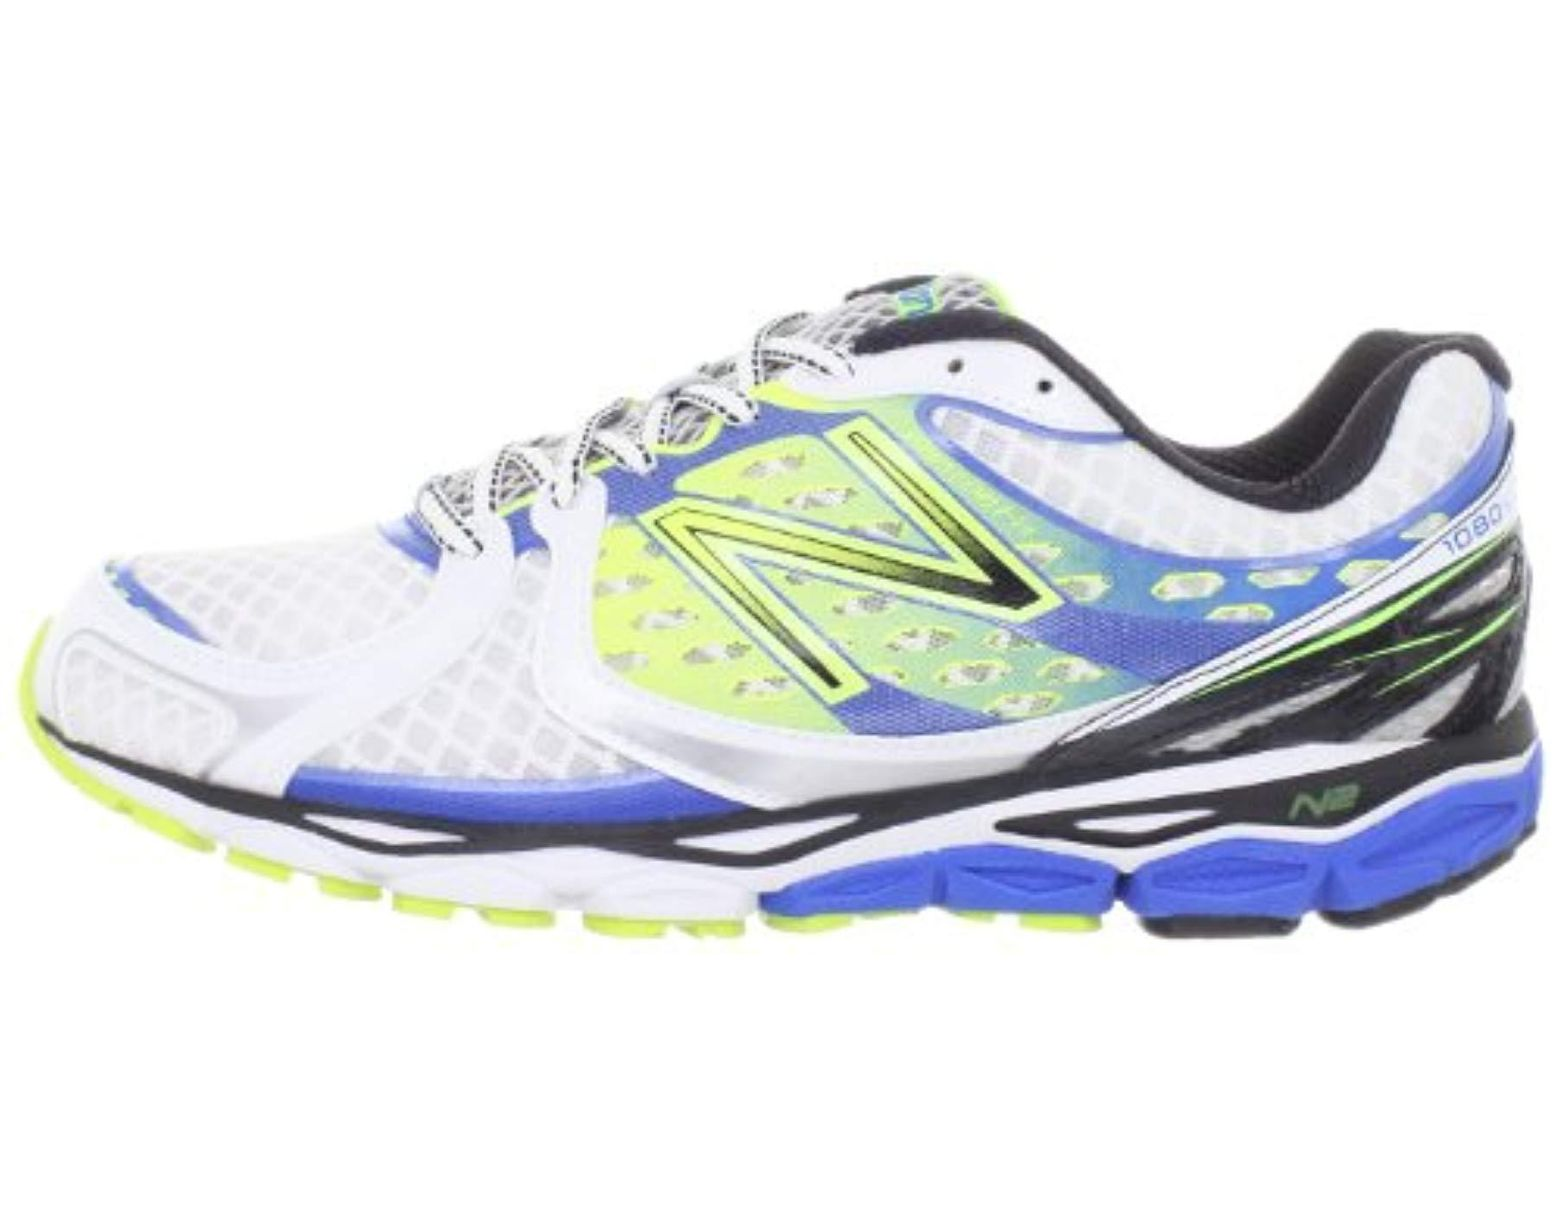 New Balance M1080v3 Running Shoes (4e Width) in Blue for Men